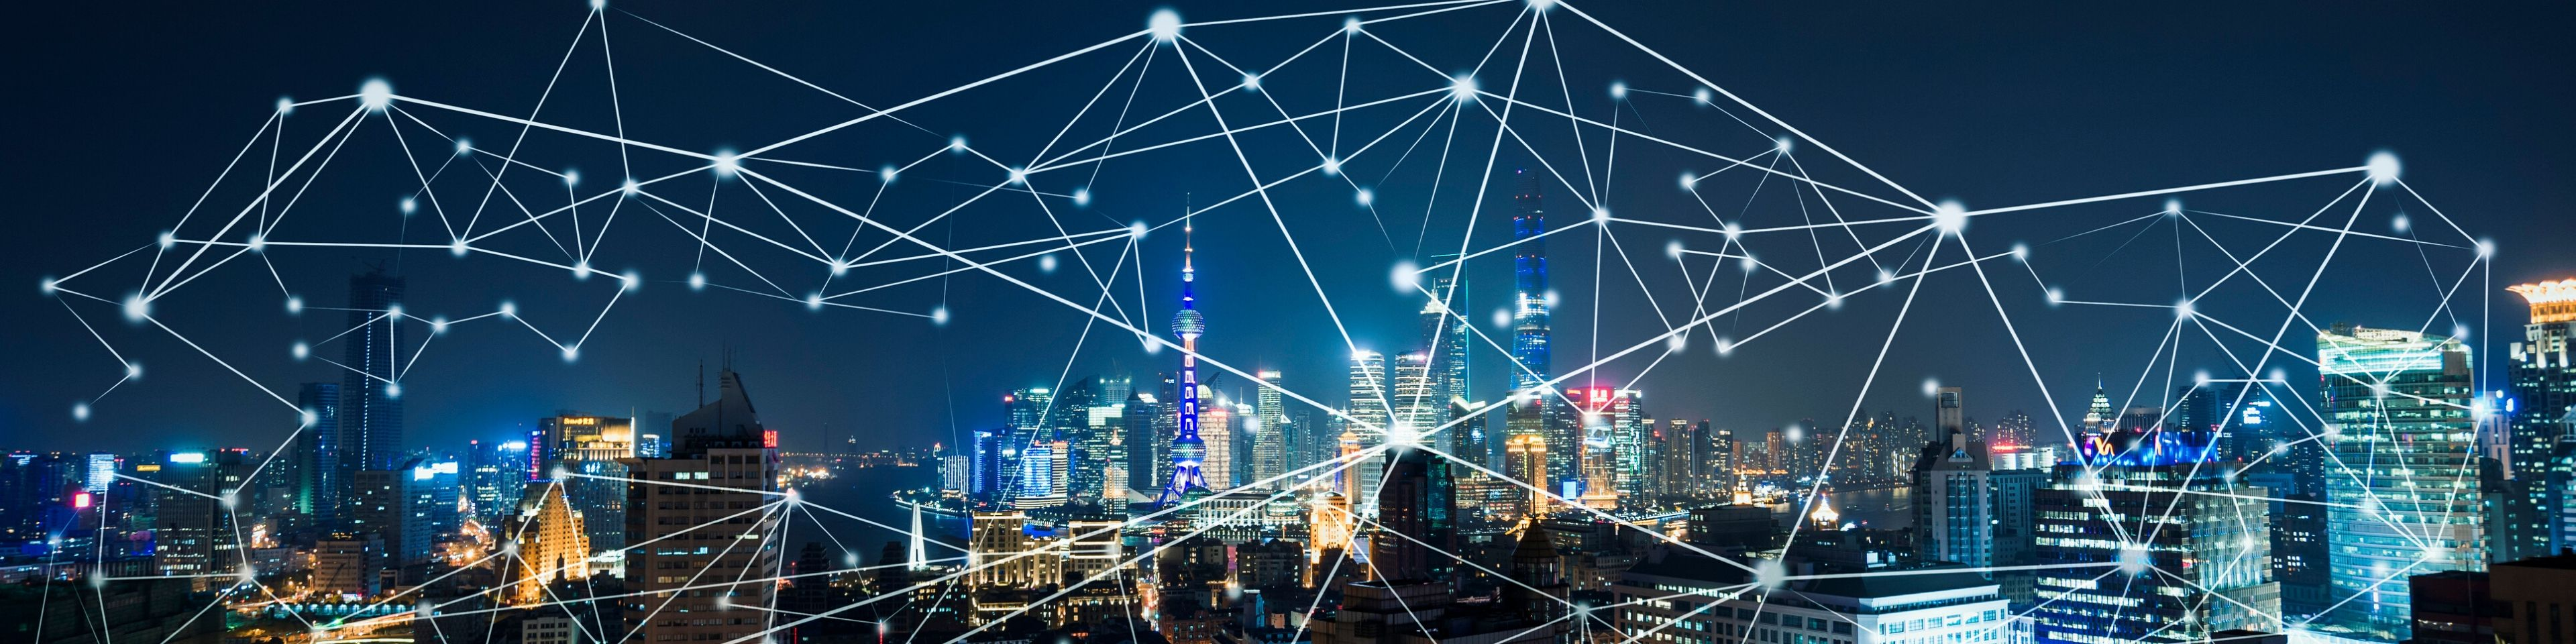 data network connections over the city at night